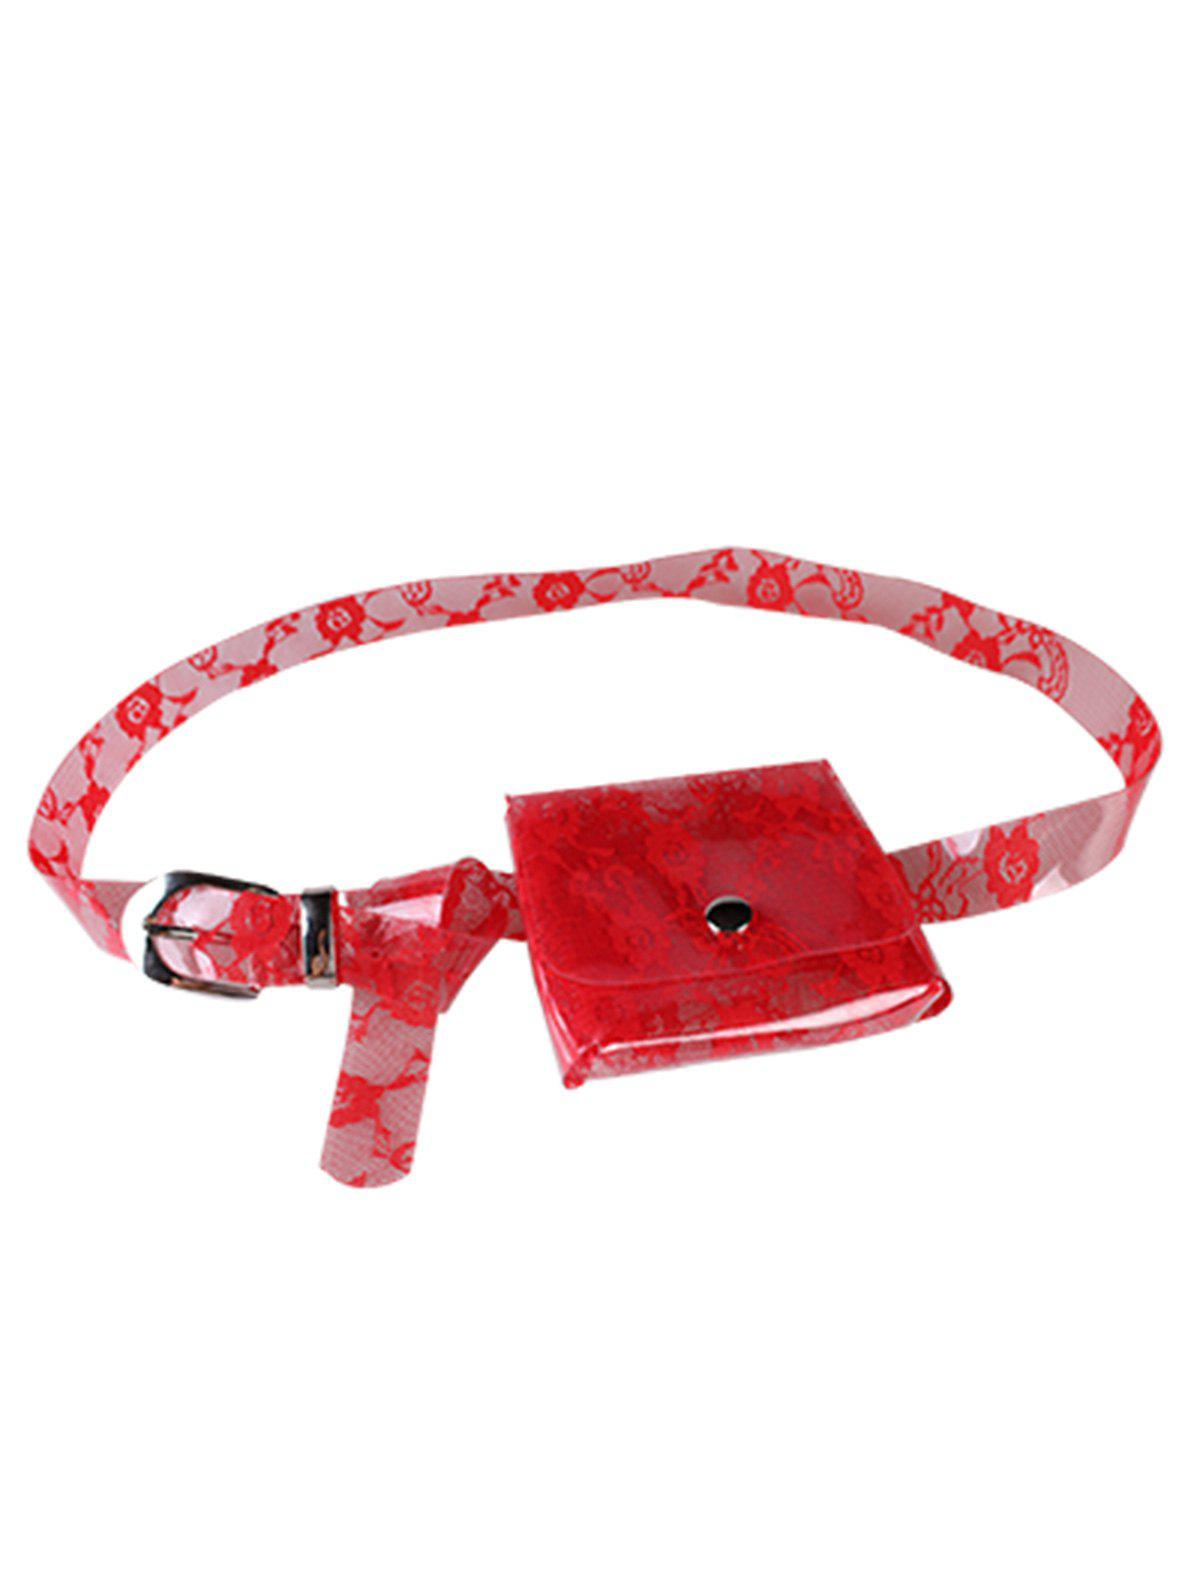 Fanny Pack Floral Transparent PVC Belt Bag - RED